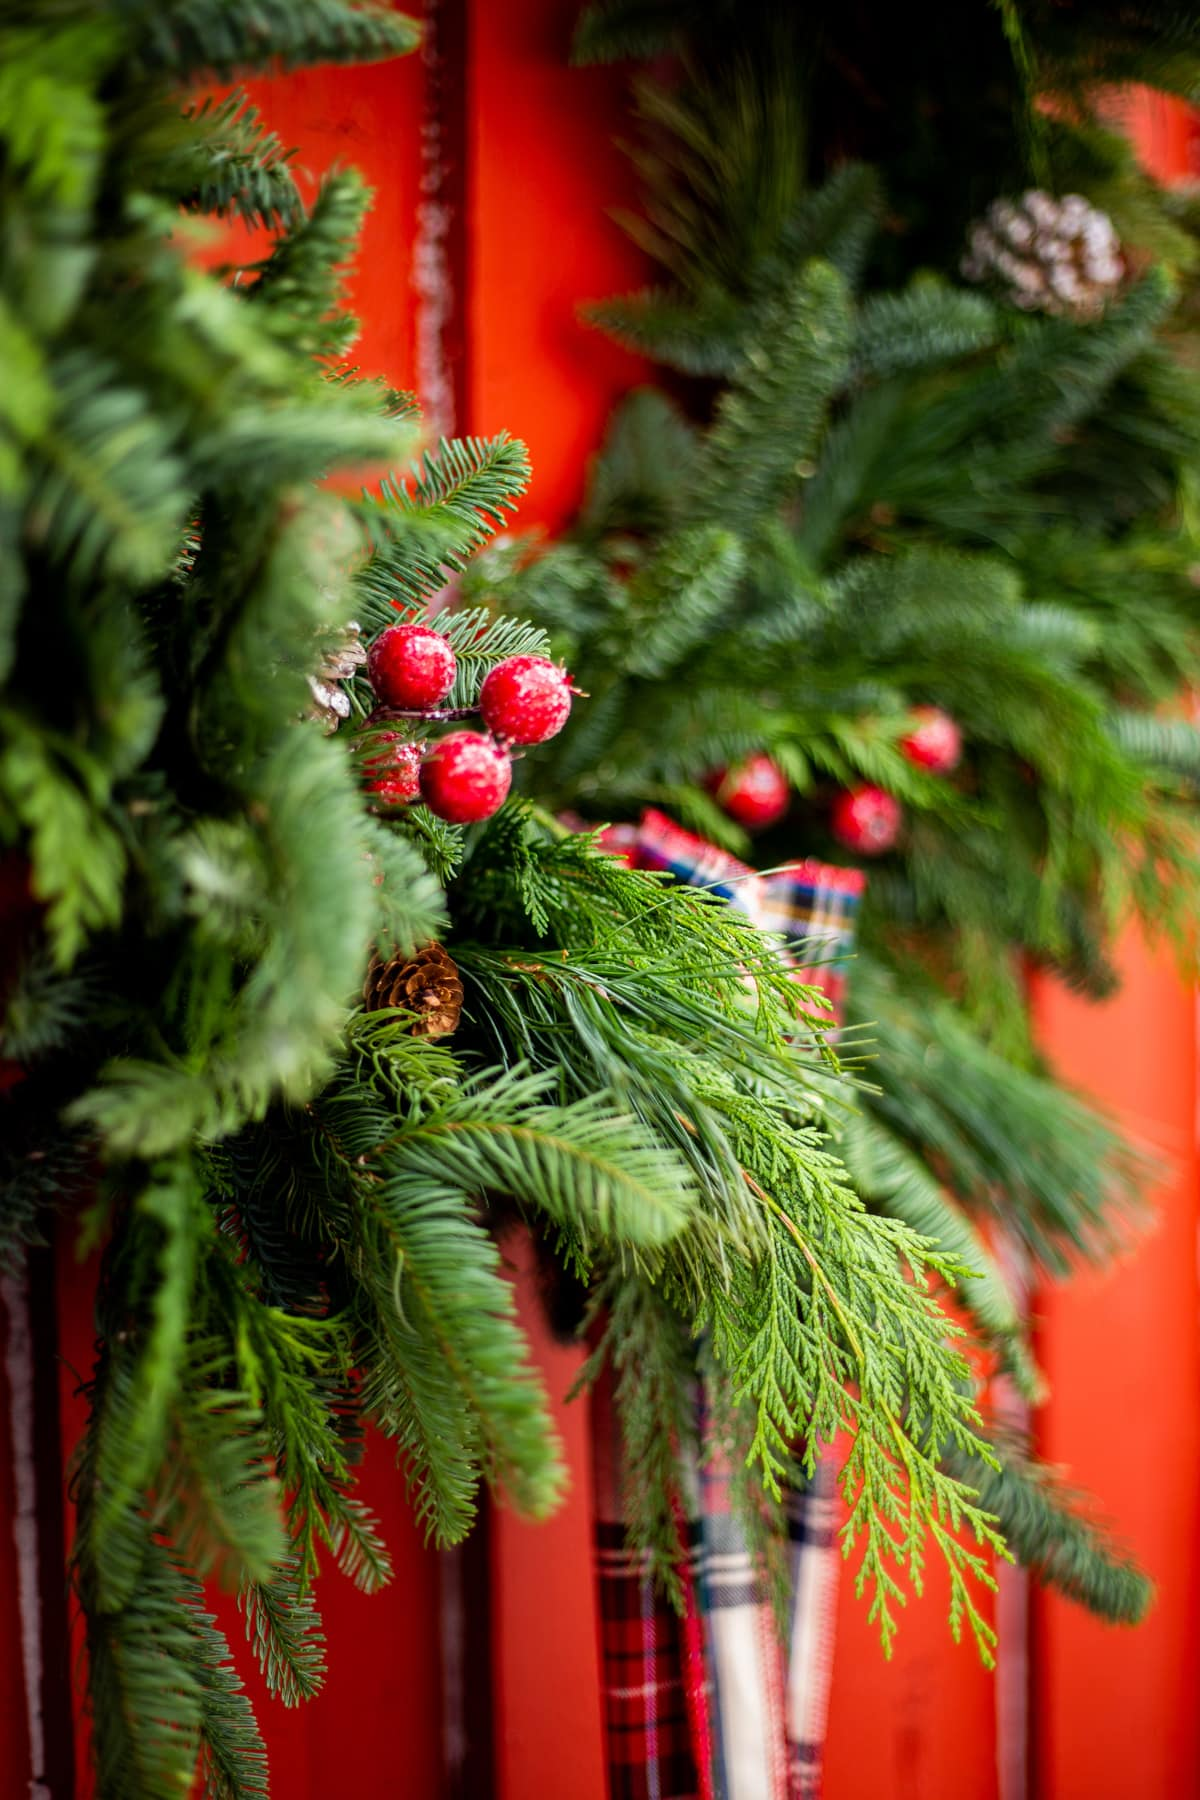 a close up of red holly berries on an evergreen wreath